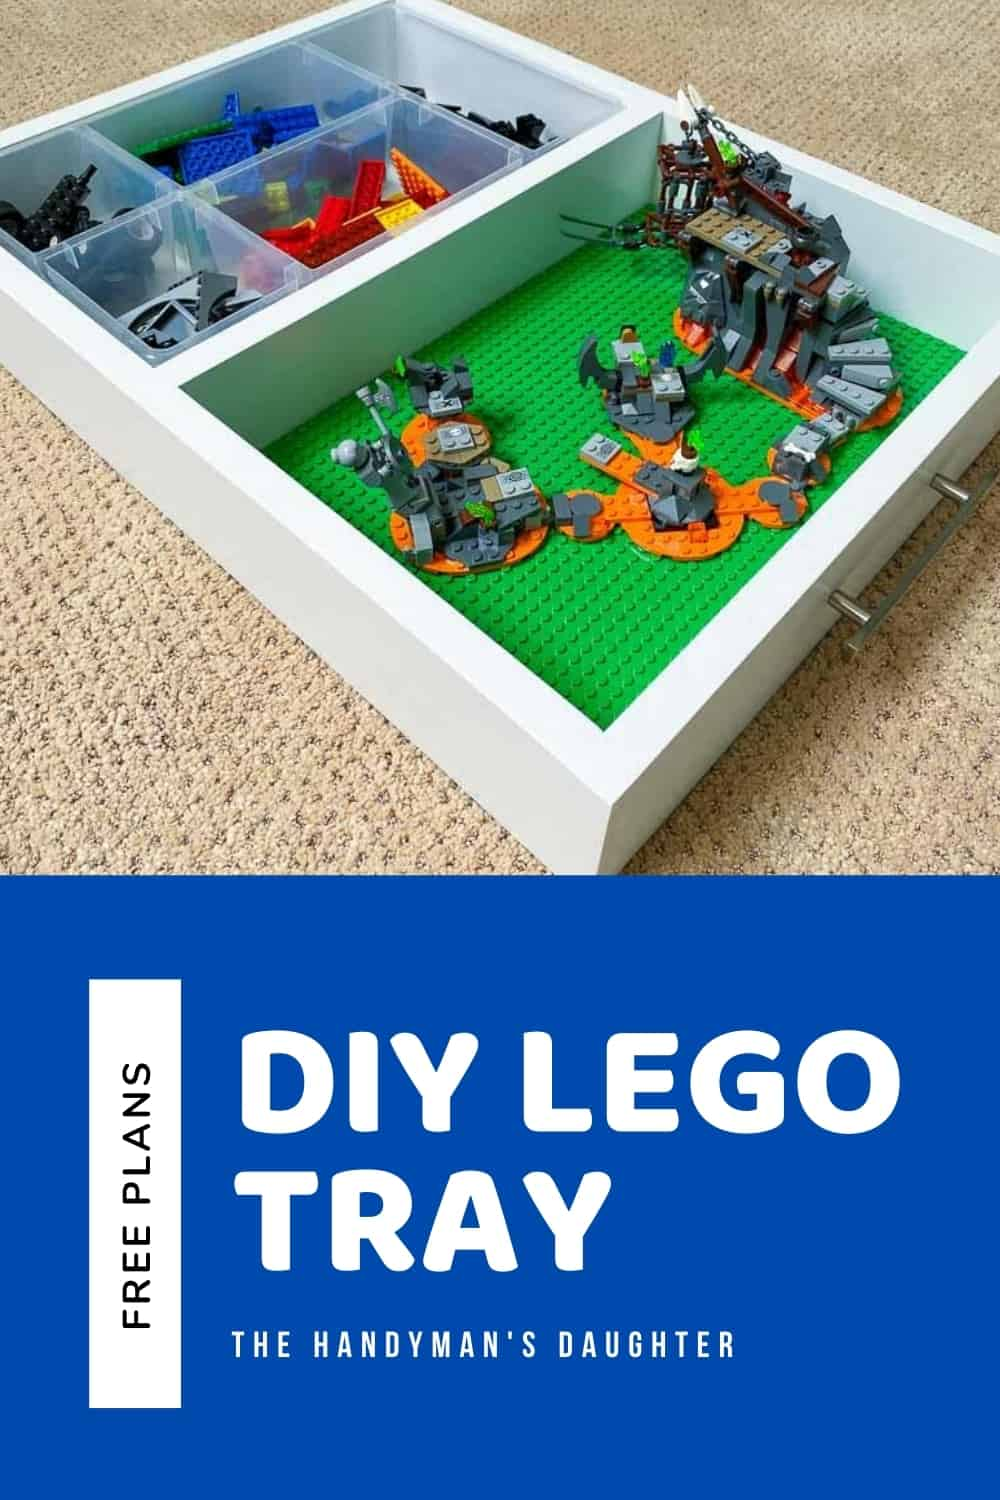 DIY Lego tray with free woodworking plans from The Handyman's Daughter